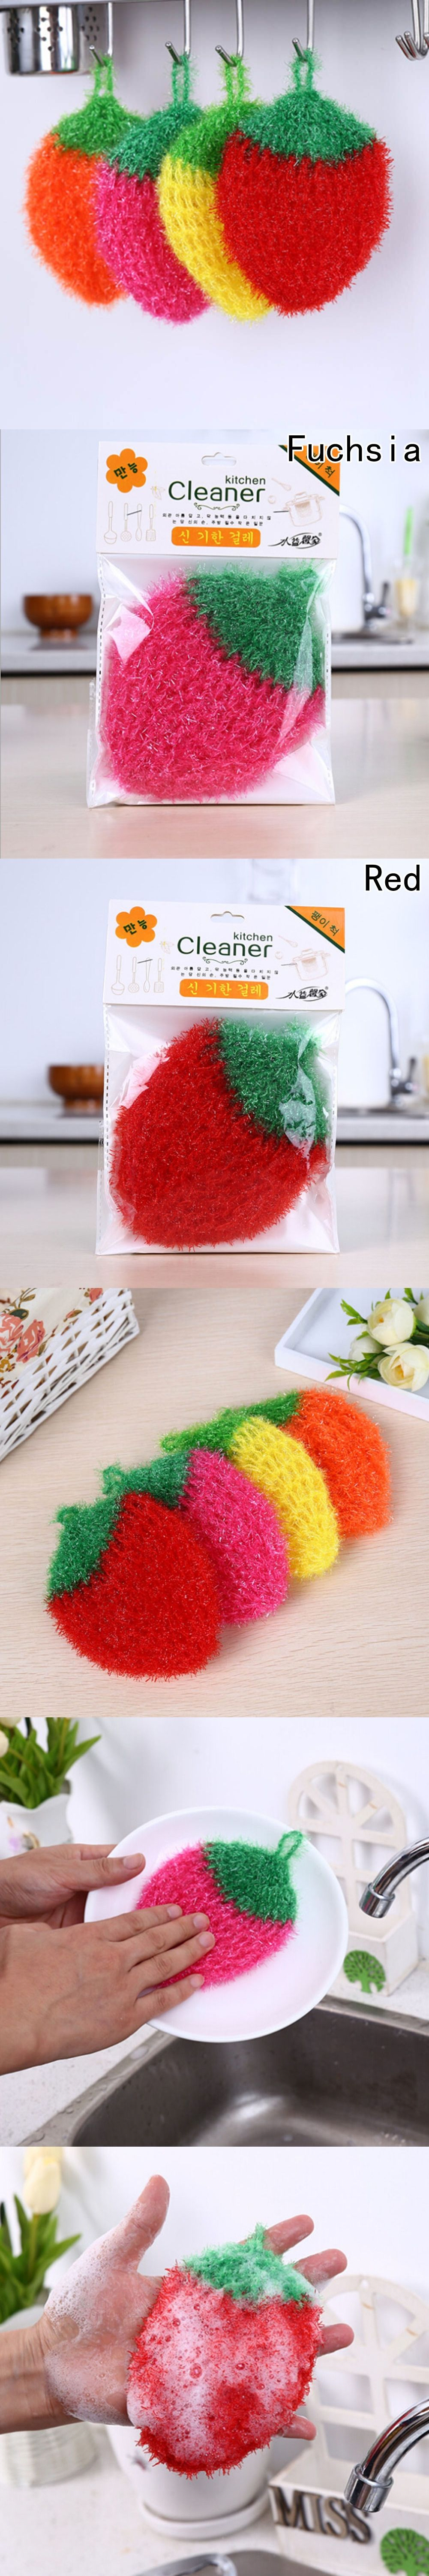 Hot sale strawberry dishwashing clean towel polyester silk cleaning